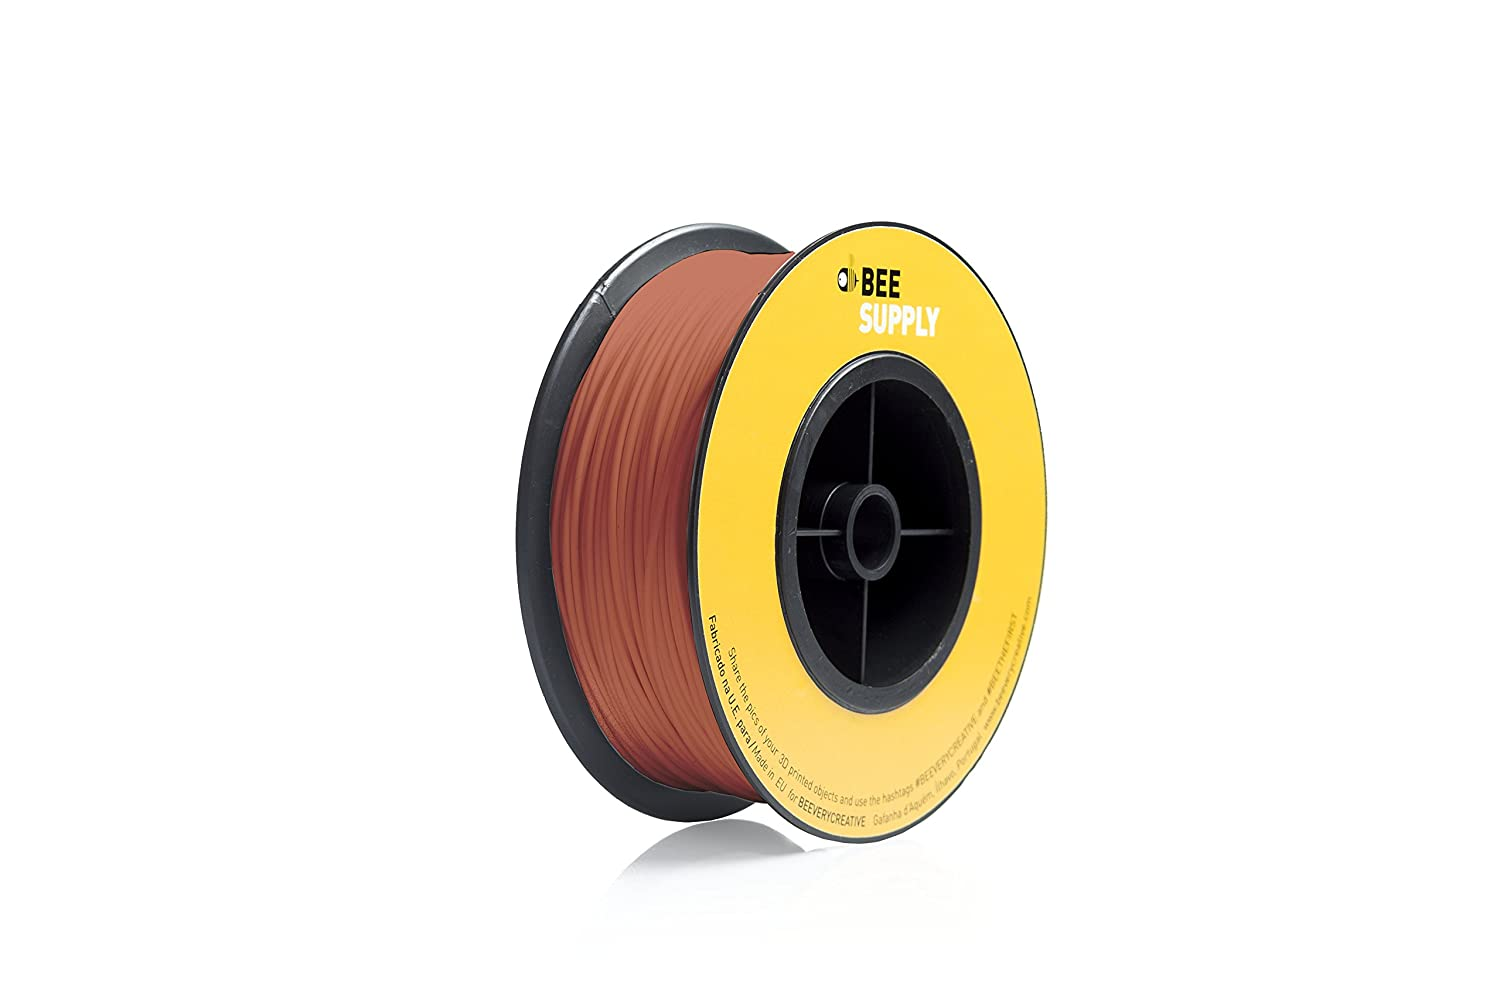 - A105 330gr Bright Red Orange BEEVERYCREATIVE CBA110335 BEESUPPLY PLA Filament for 3D Printers, 1.75mm